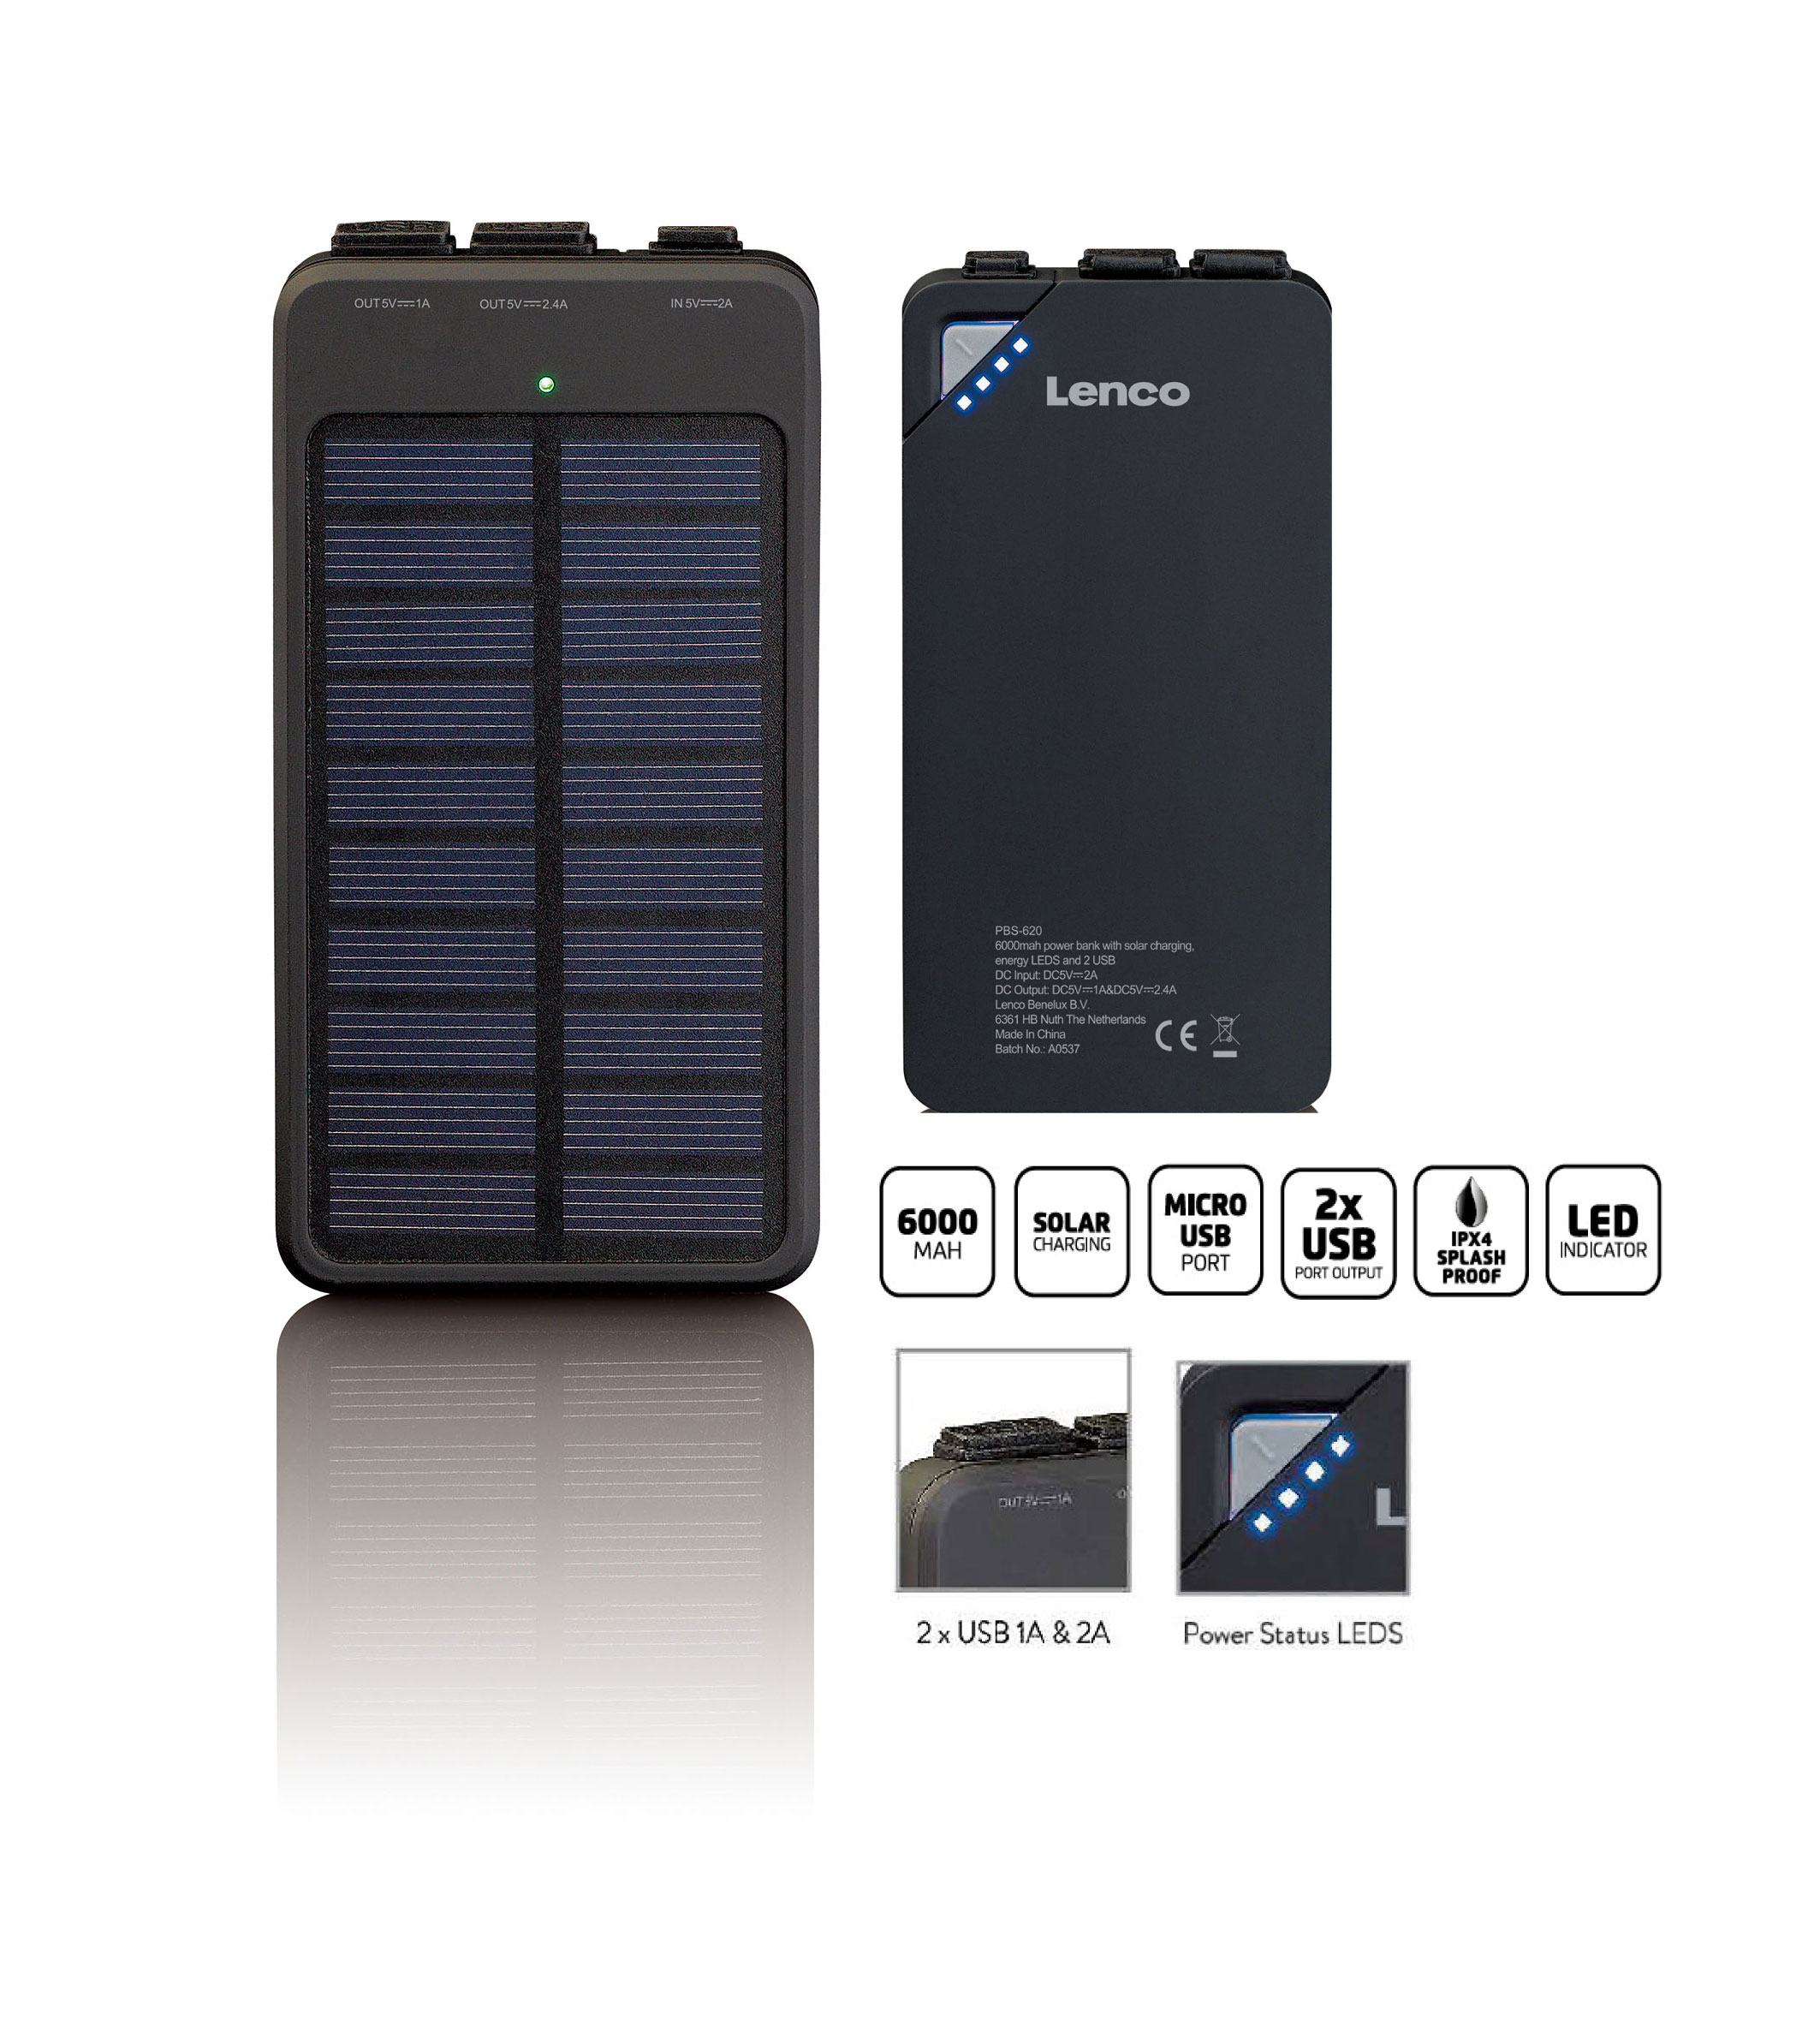 Lenco Powerbank Solarpanel 5v